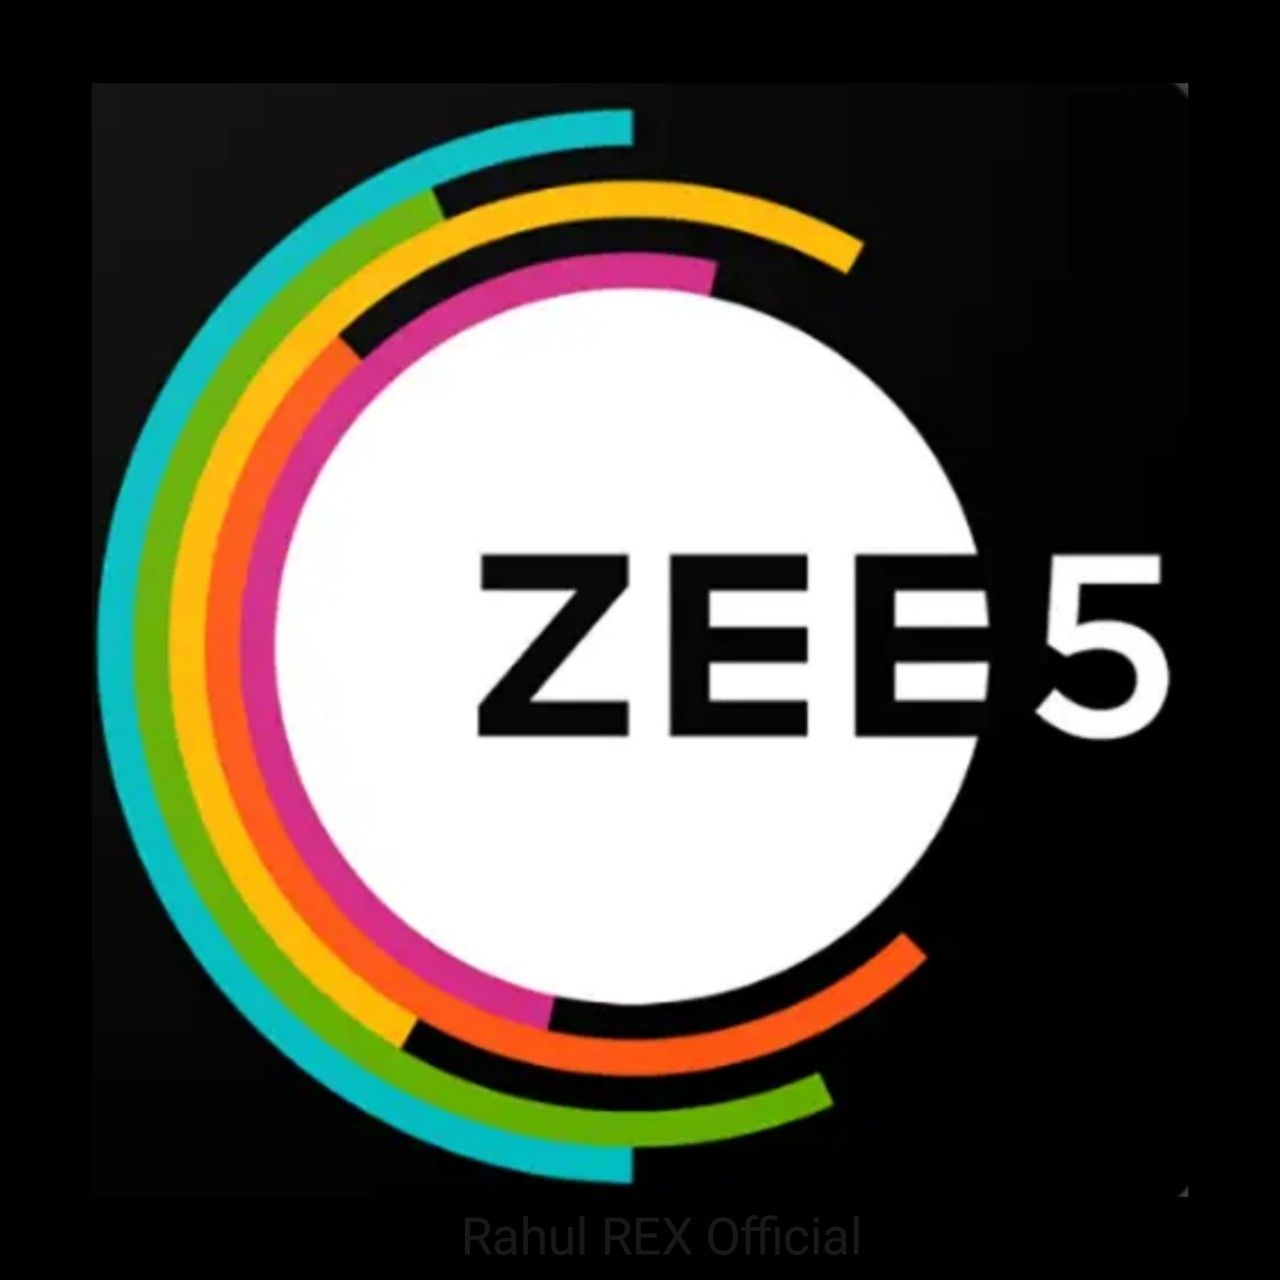 Zee 5 TV/WebSreies/Movies Platform Rahul REX Logo